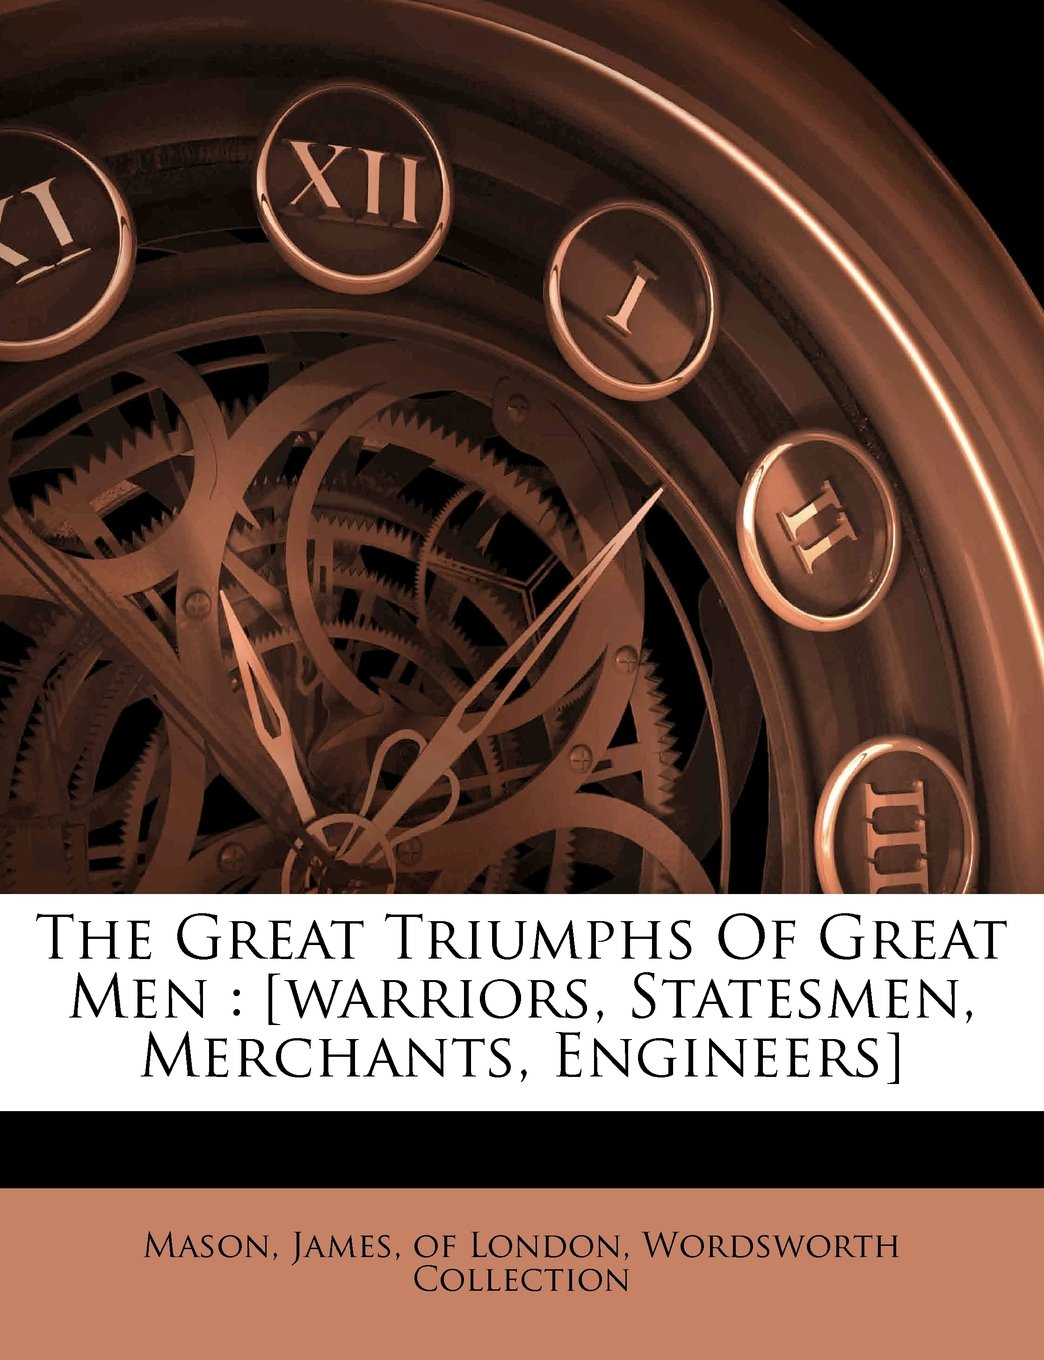 The great triumphs of great men: [warriors, statesmen, merchants, engineers] pdf